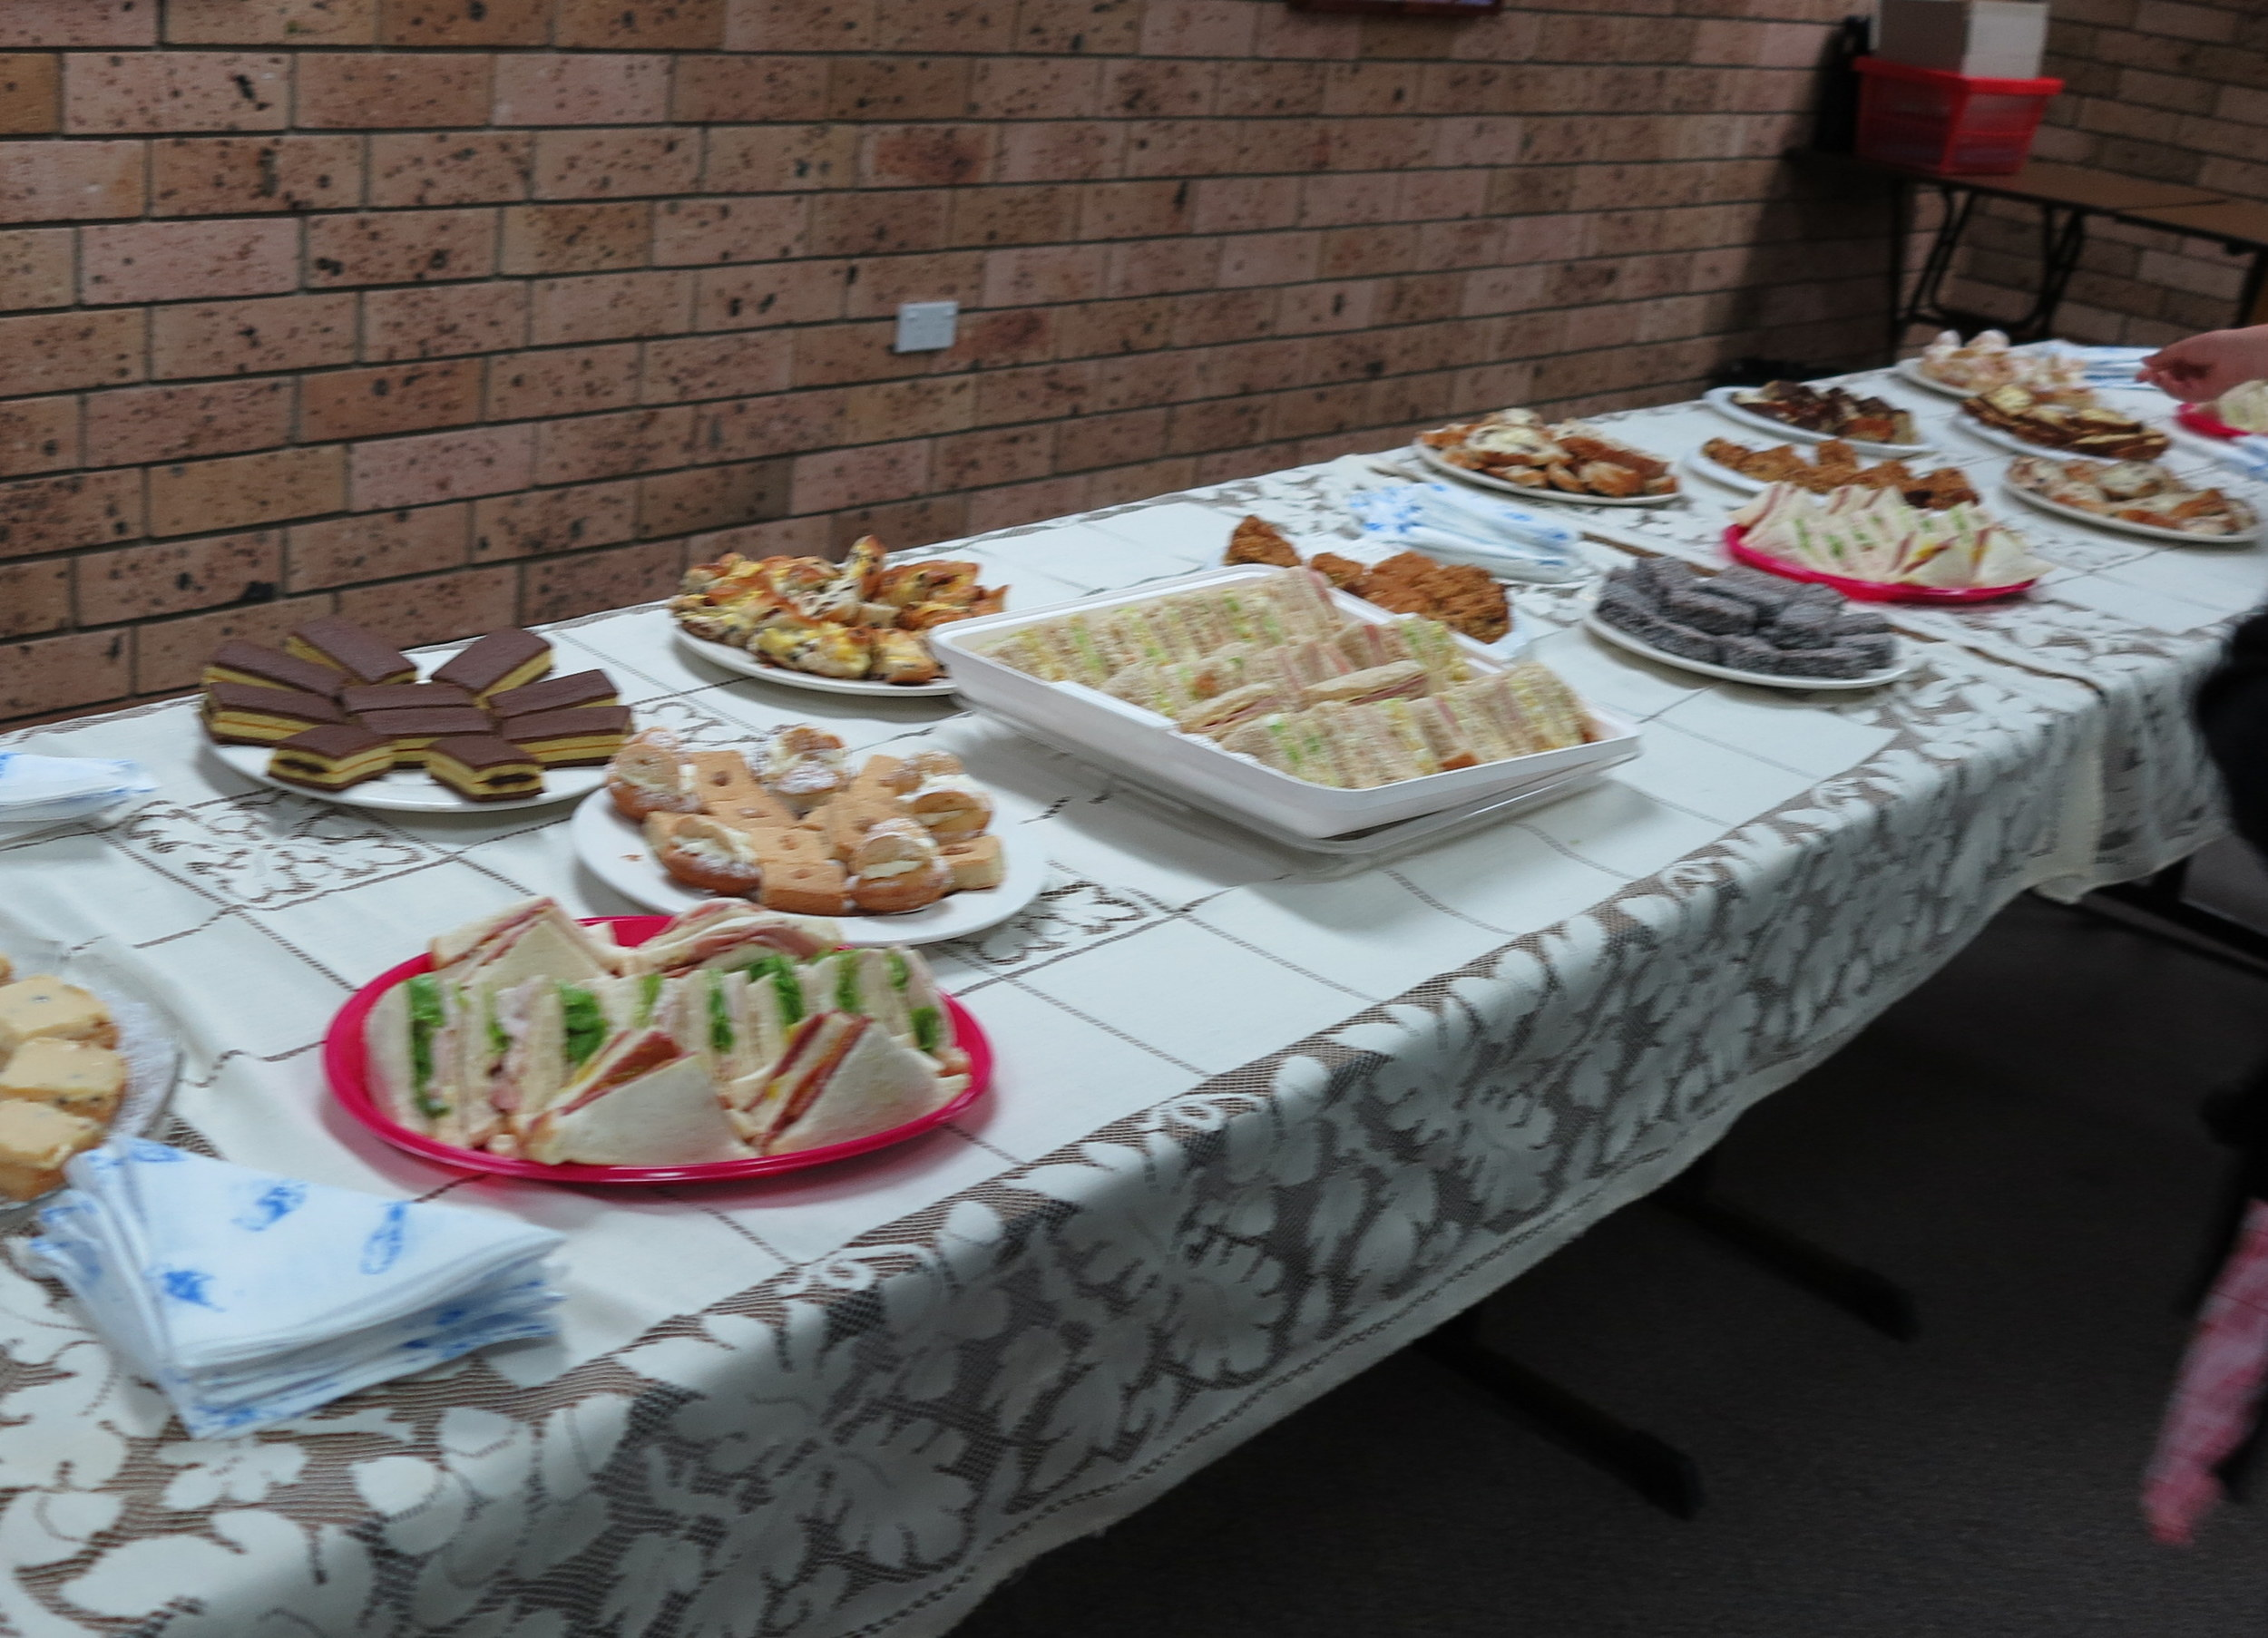 Our AGM supper provided by the Ladies Auxiliary